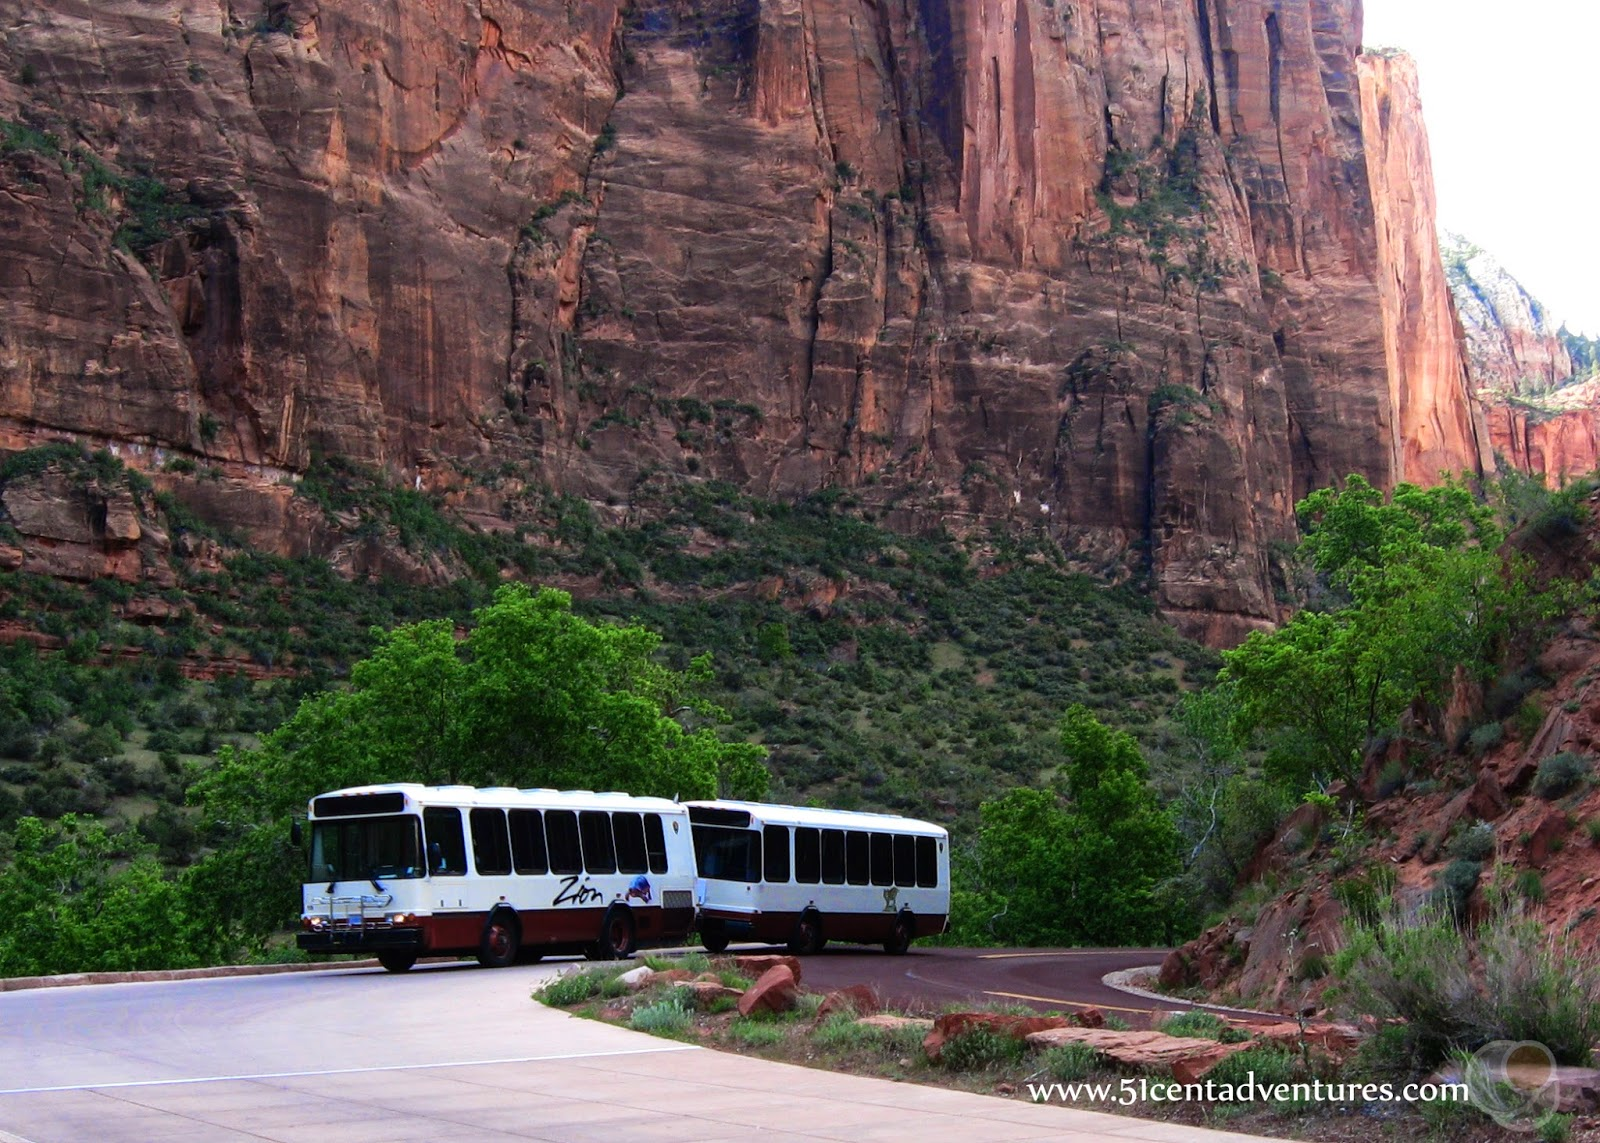 How To Drive Your Own Car In Zion